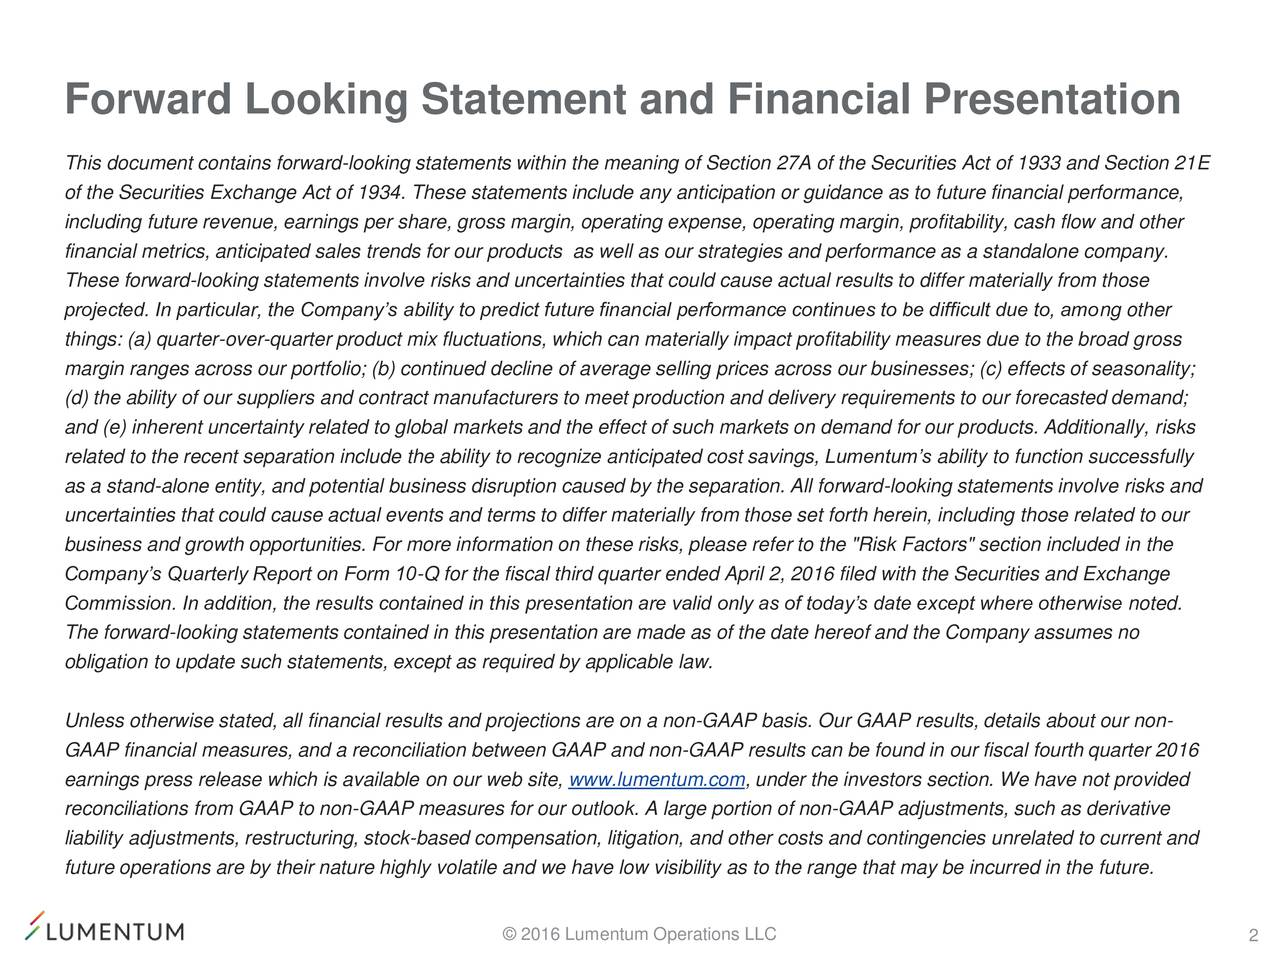 """This document contains forward-looking statements within the meaning of Section 27A of the Securities Act of 1933 and Section 21E of the Securities Exchange Act of 1934. These statements include any anticipation or guidance as to future financial performance, including future revenue, earnings per share, gross margin, operating expense, operating margin, profitability, cash flow and other financial metrics, anticipated sales trends for our products as well as our strategies and performance as a standalone company. These forward-looking statements involve risks and uncertainties that could cause actual results to differ materially from those projected. In particular, the Companys ability to predict future financial performance continues to be difficult due to, among other things: (a) quarter-over-quarter product mix fluctuations, which can materially impact profitability measures due to the broad gross margin ranges across our portfolio; (b) continued decline of average selling prices across our businesses; (c) effects of seasonality; (d) the ability of our suppliers and contract manufacturers to meet production and delivery requirements to our forecasted demand; and (e) inherent uncertainty related to global markets and the effect of such markets on demand for our products. Additionally, risks related to the recent separation include the ability to recognize anticipated cost savings, Lumentums ability to function successfully as a stand-alone entity, and potential business disruption caused by the separation. All forward-looking statements involve risks and uncertainties that could cause actual events and terms to differ materially from those set forth herein, including those related to our business and growth opportunities. For more information on these risks, please refer to the """"Risk Factors"""" section included in the Companys Quarterly Report on Form 10-Q for the fiscal third quarter ended April 2, 2016 filed with the Securities and Exchange Commission. In additio"""